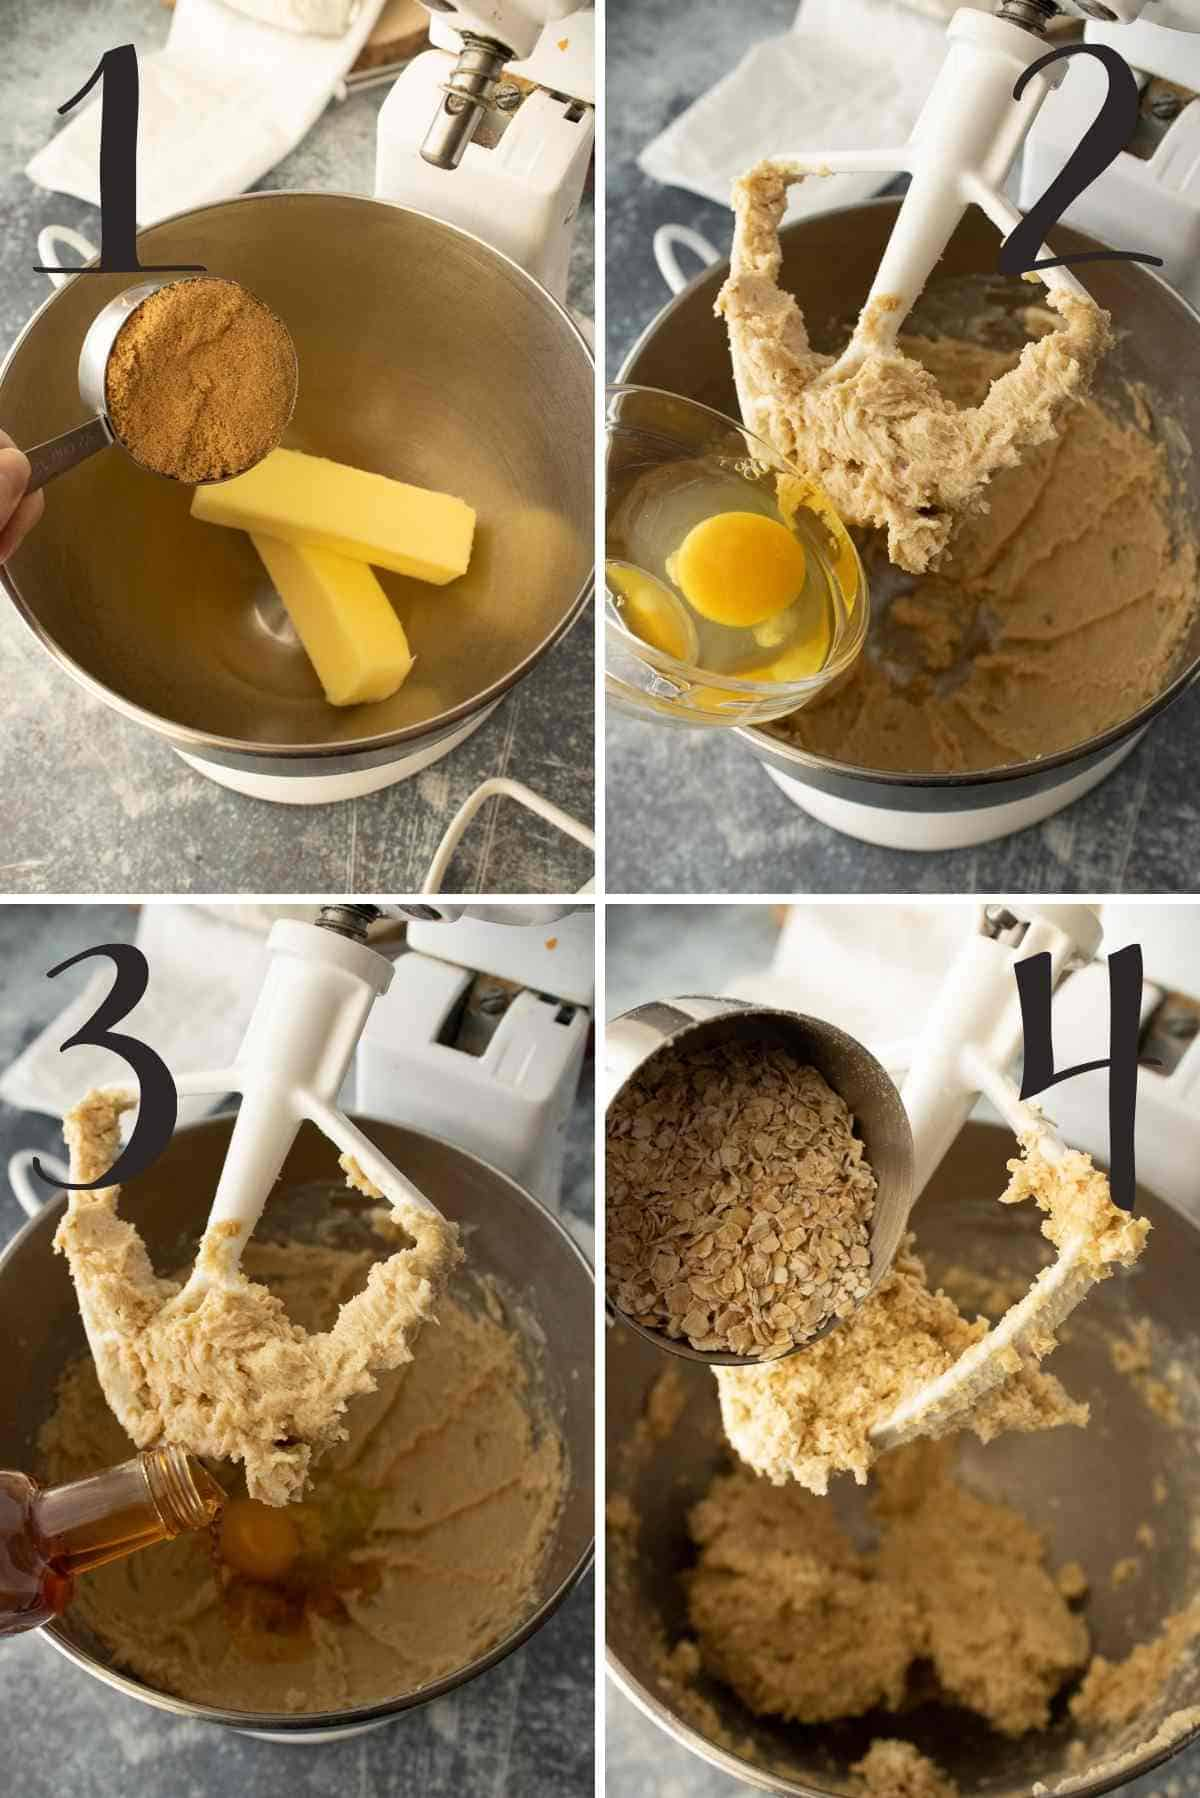 Steps of creaming the butter and sugar, adding the egg and vanilla, and then the quick oats.